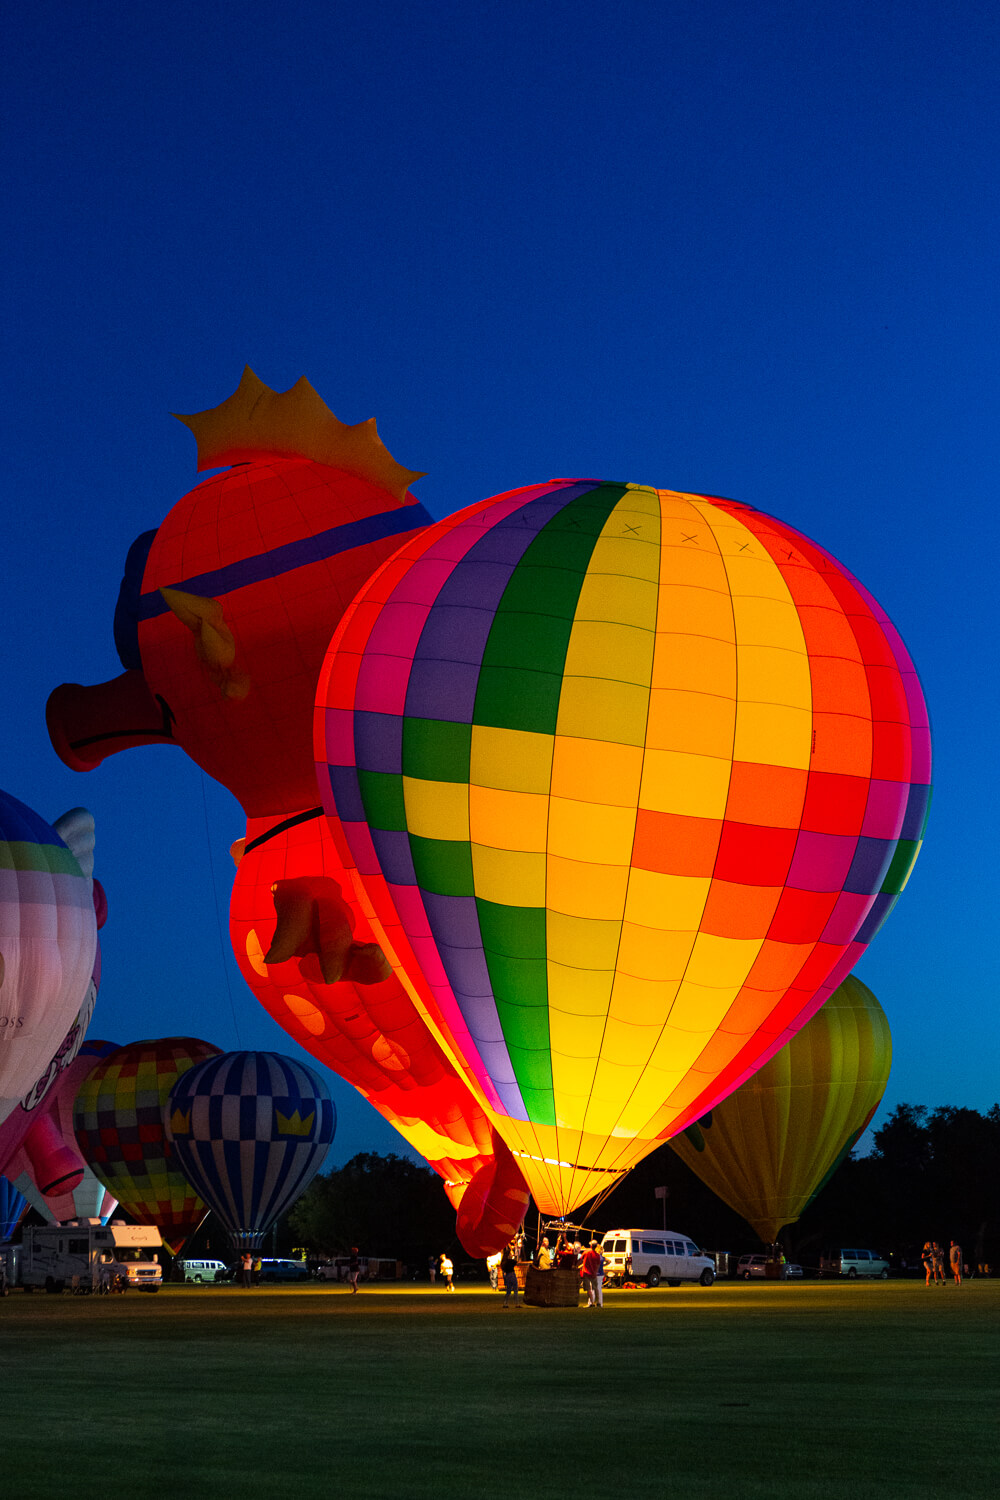 hot air balloon and balloon glow photos from the 2019 Villages Polo Club Hot Air Balloon Festival